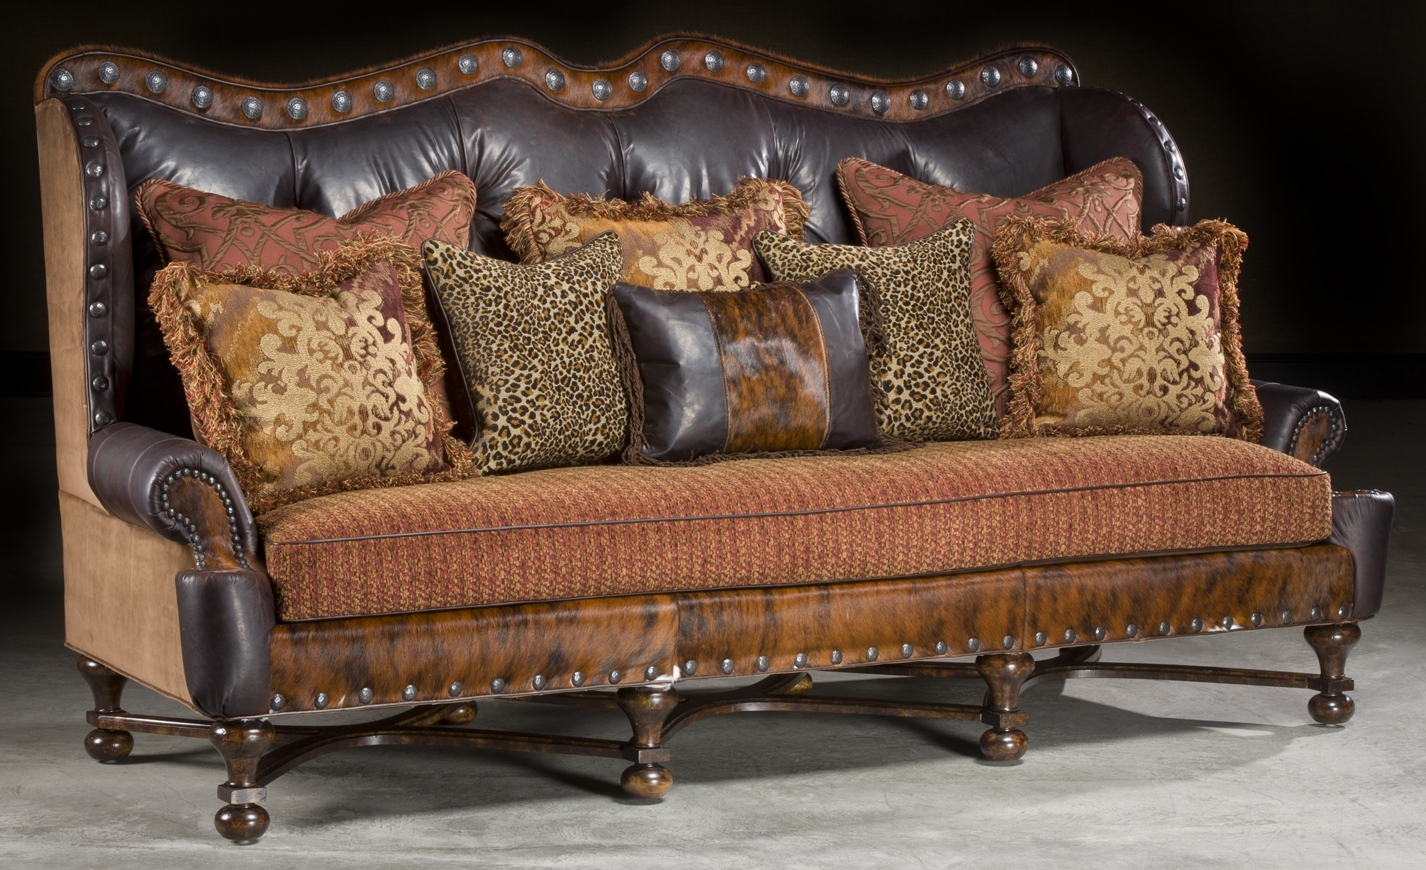 Western sofas for sale home the honoroak for High end sofas for sale